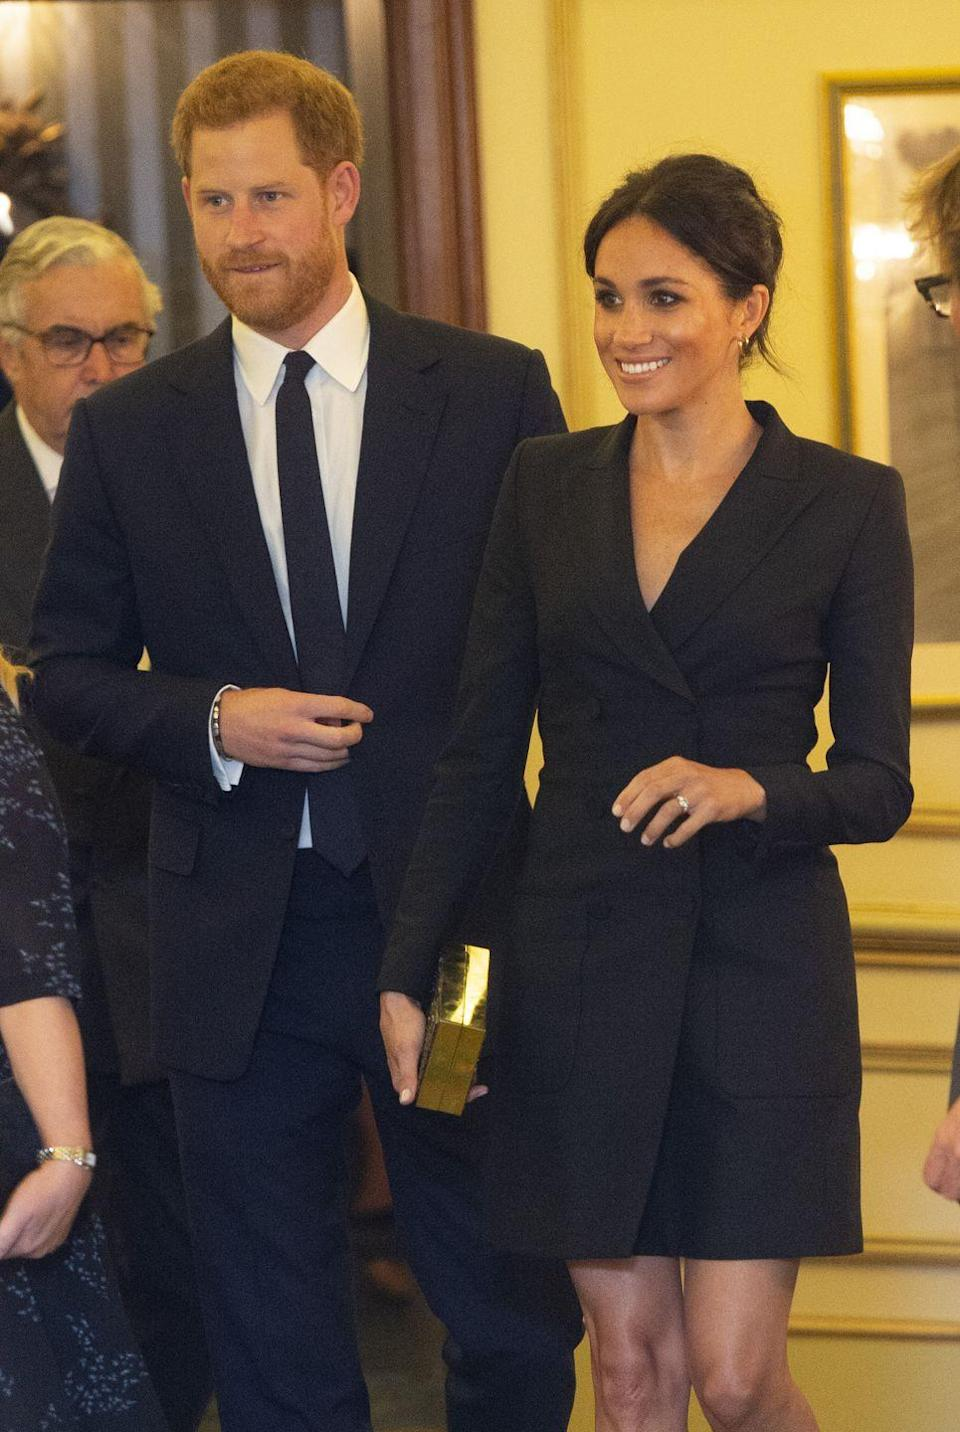 """<p>Meghan Markle was the subject of fashion controversy yet again when she wore this modern black tuxedo dress from Judith and Charles to a 2018 performance. Some <a href=""""https://www.marieclaire.com/fashion/a22871948/meghan-markles-hamilton-tuxedo-dress-protocol/"""" rel=""""nofollow noopener"""" target=""""_blank"""" data-ylk=""""slk:UK tabloids criticized the look"""" class=""""link rapid-noclick-resp"""">UK tabloids criticized the look</a>, because she broke two of the supposed style rules for royals: The hemline hit above her knee and she neglected to wear nude tights underneath the dress. </p>"""